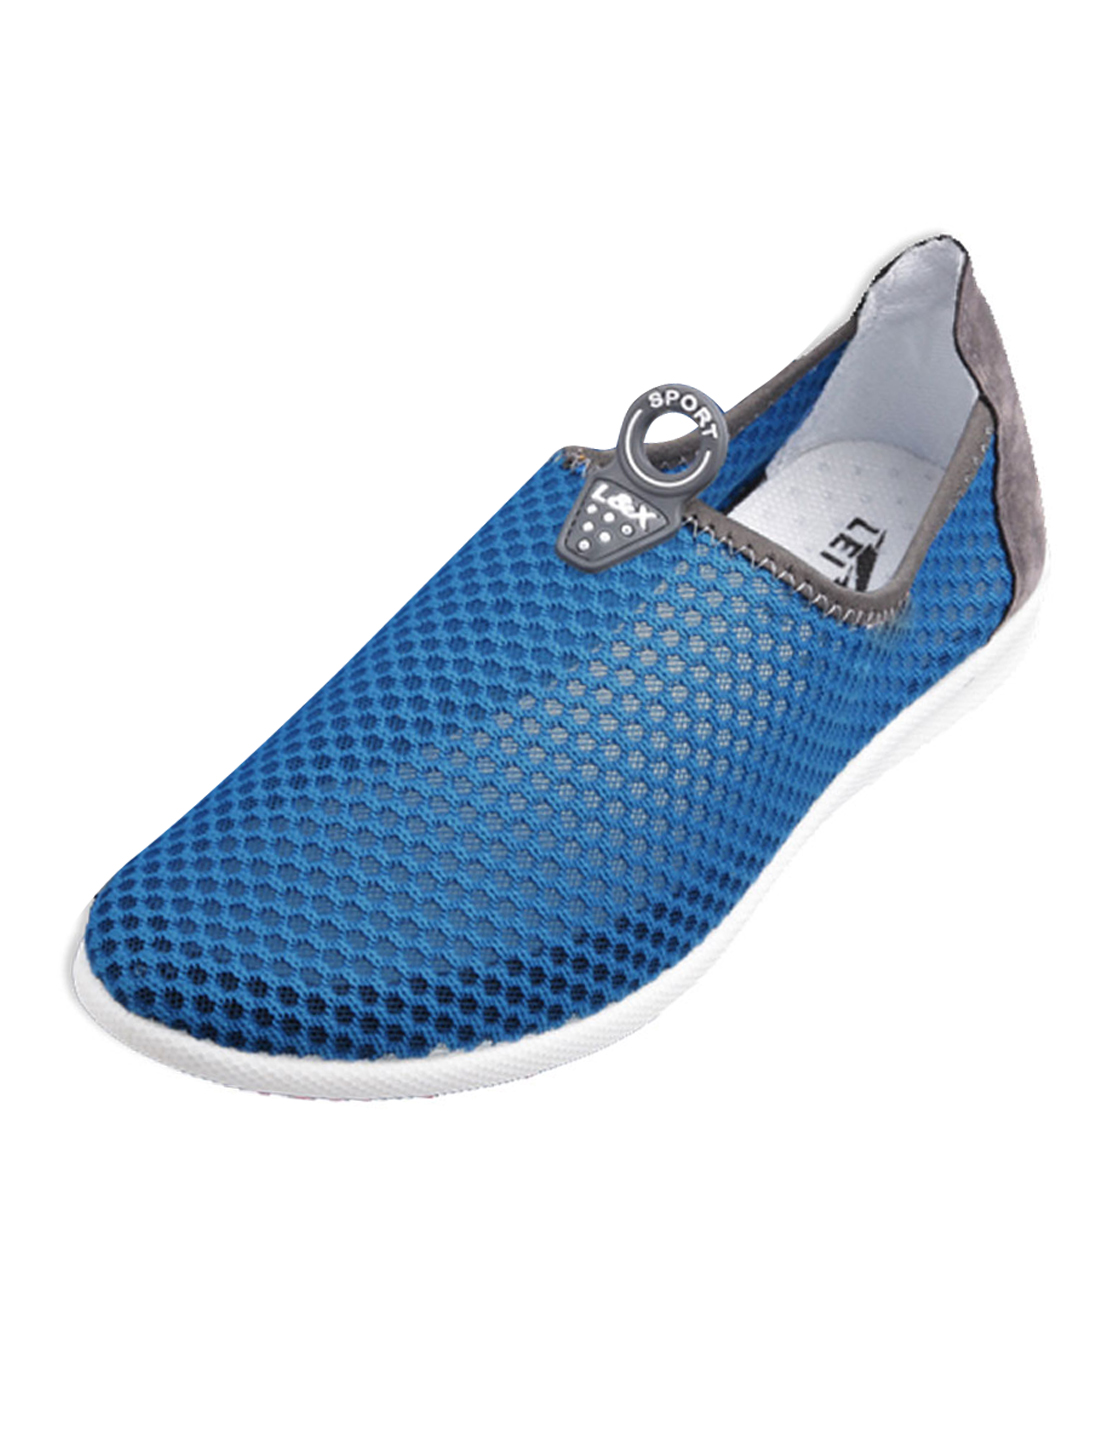 Men Breathable Superior Comfort Shoes Blue US Size 10.5